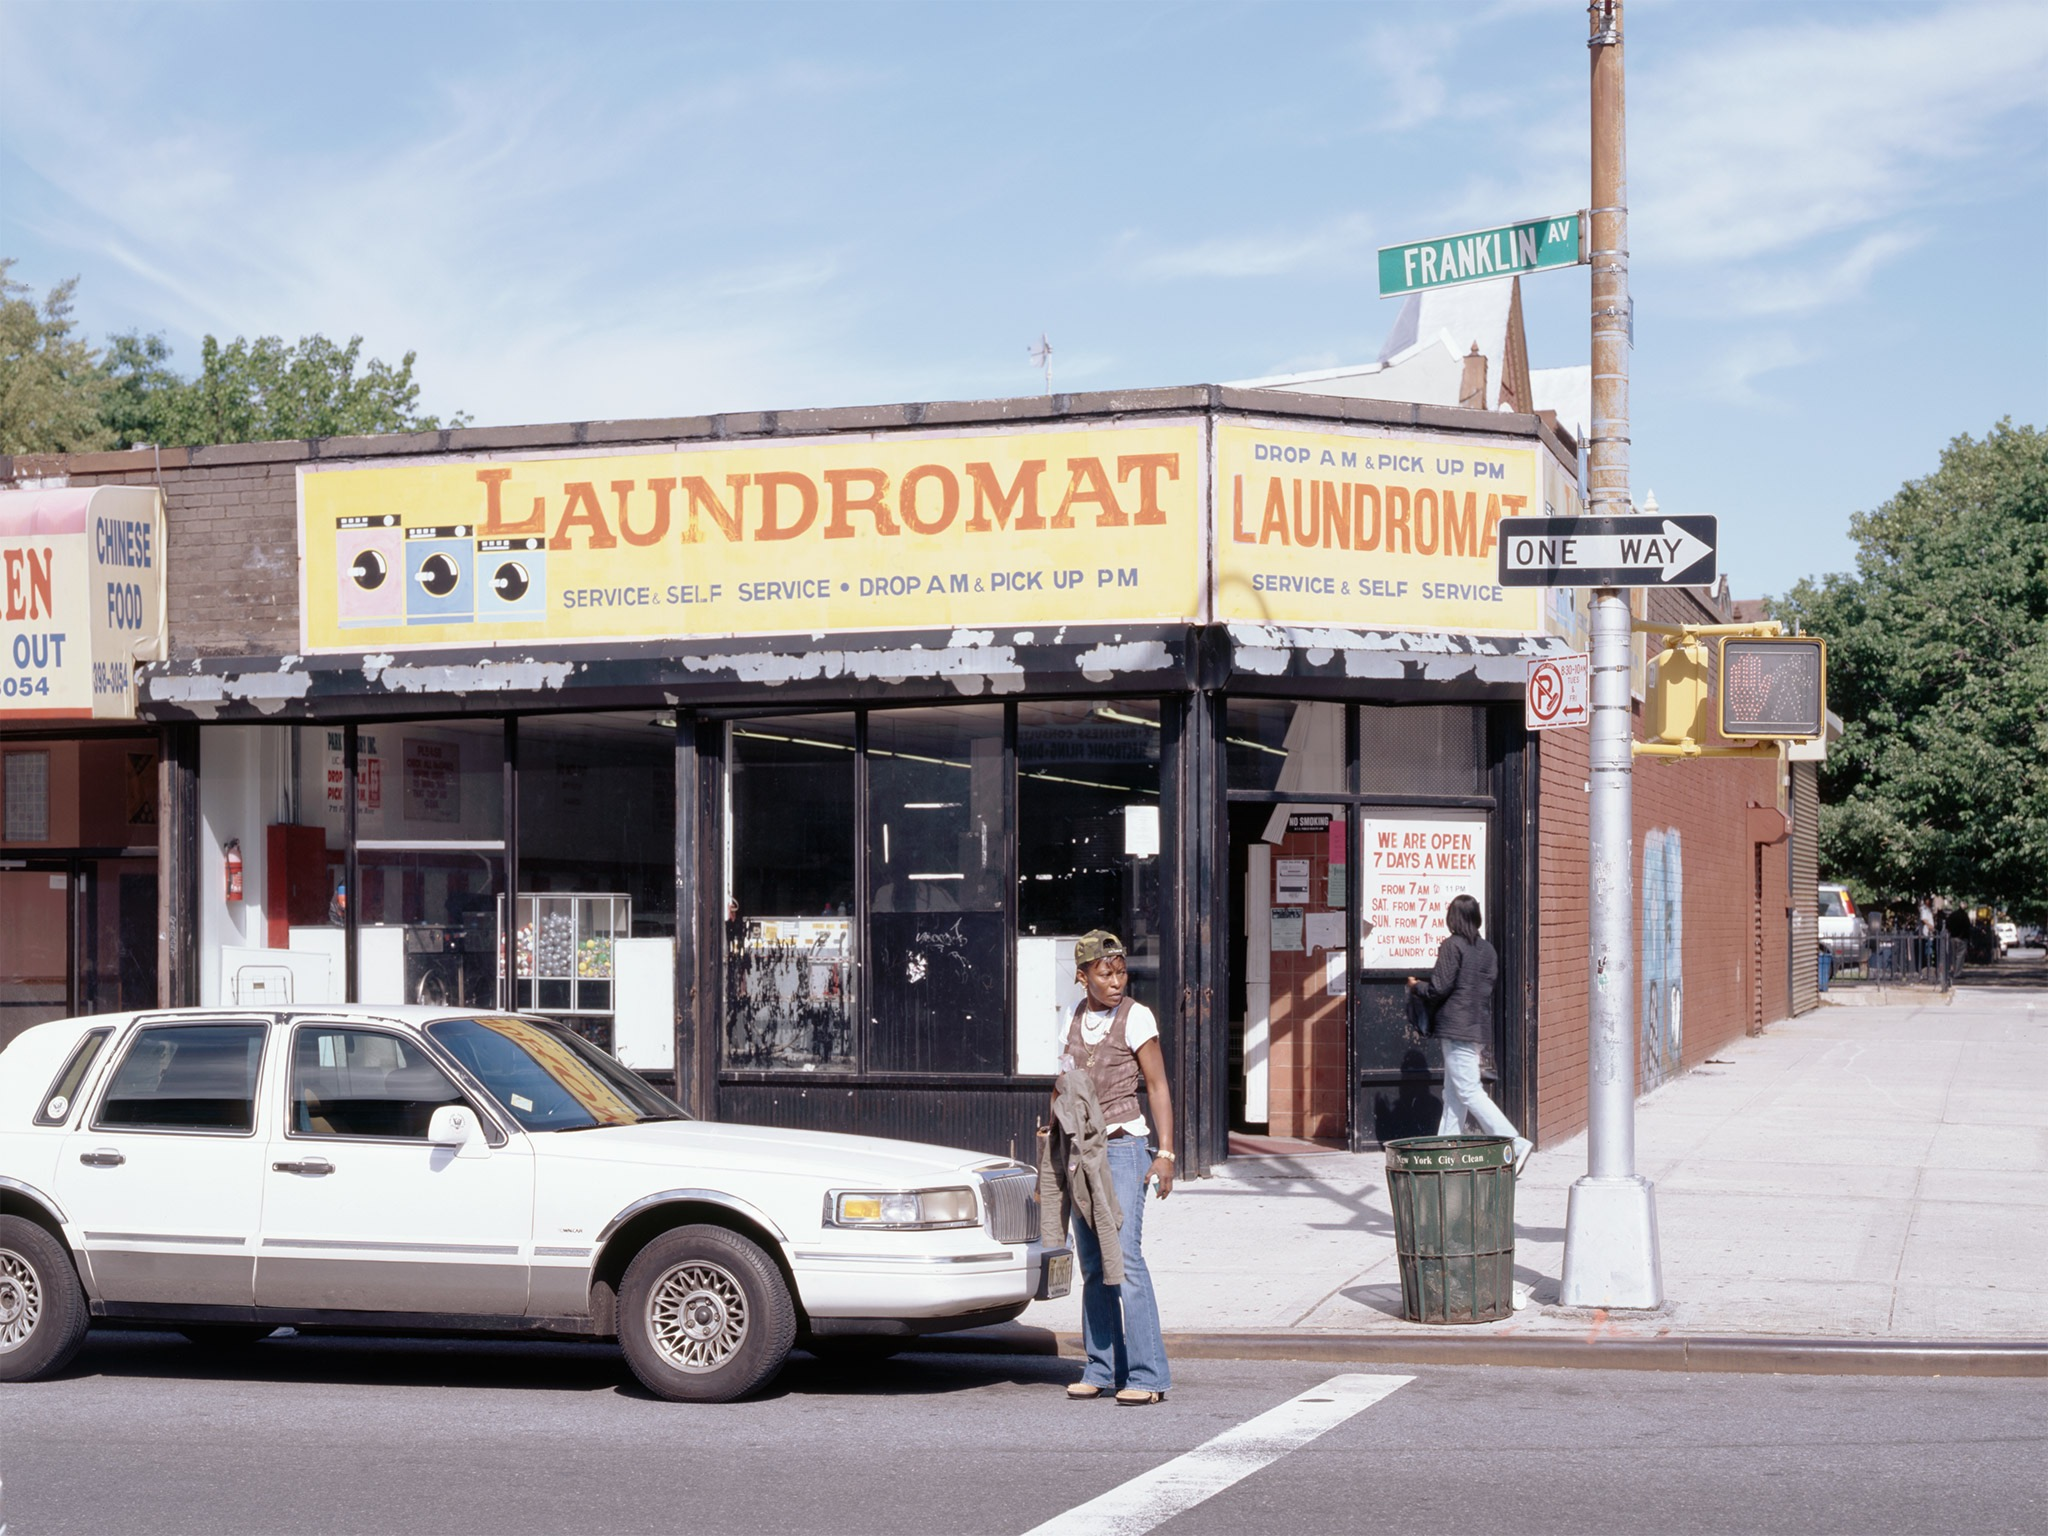 Laundromat   Prospect Heights 2006   Franklin Ave. and Park Place  40.674258, -73.956755